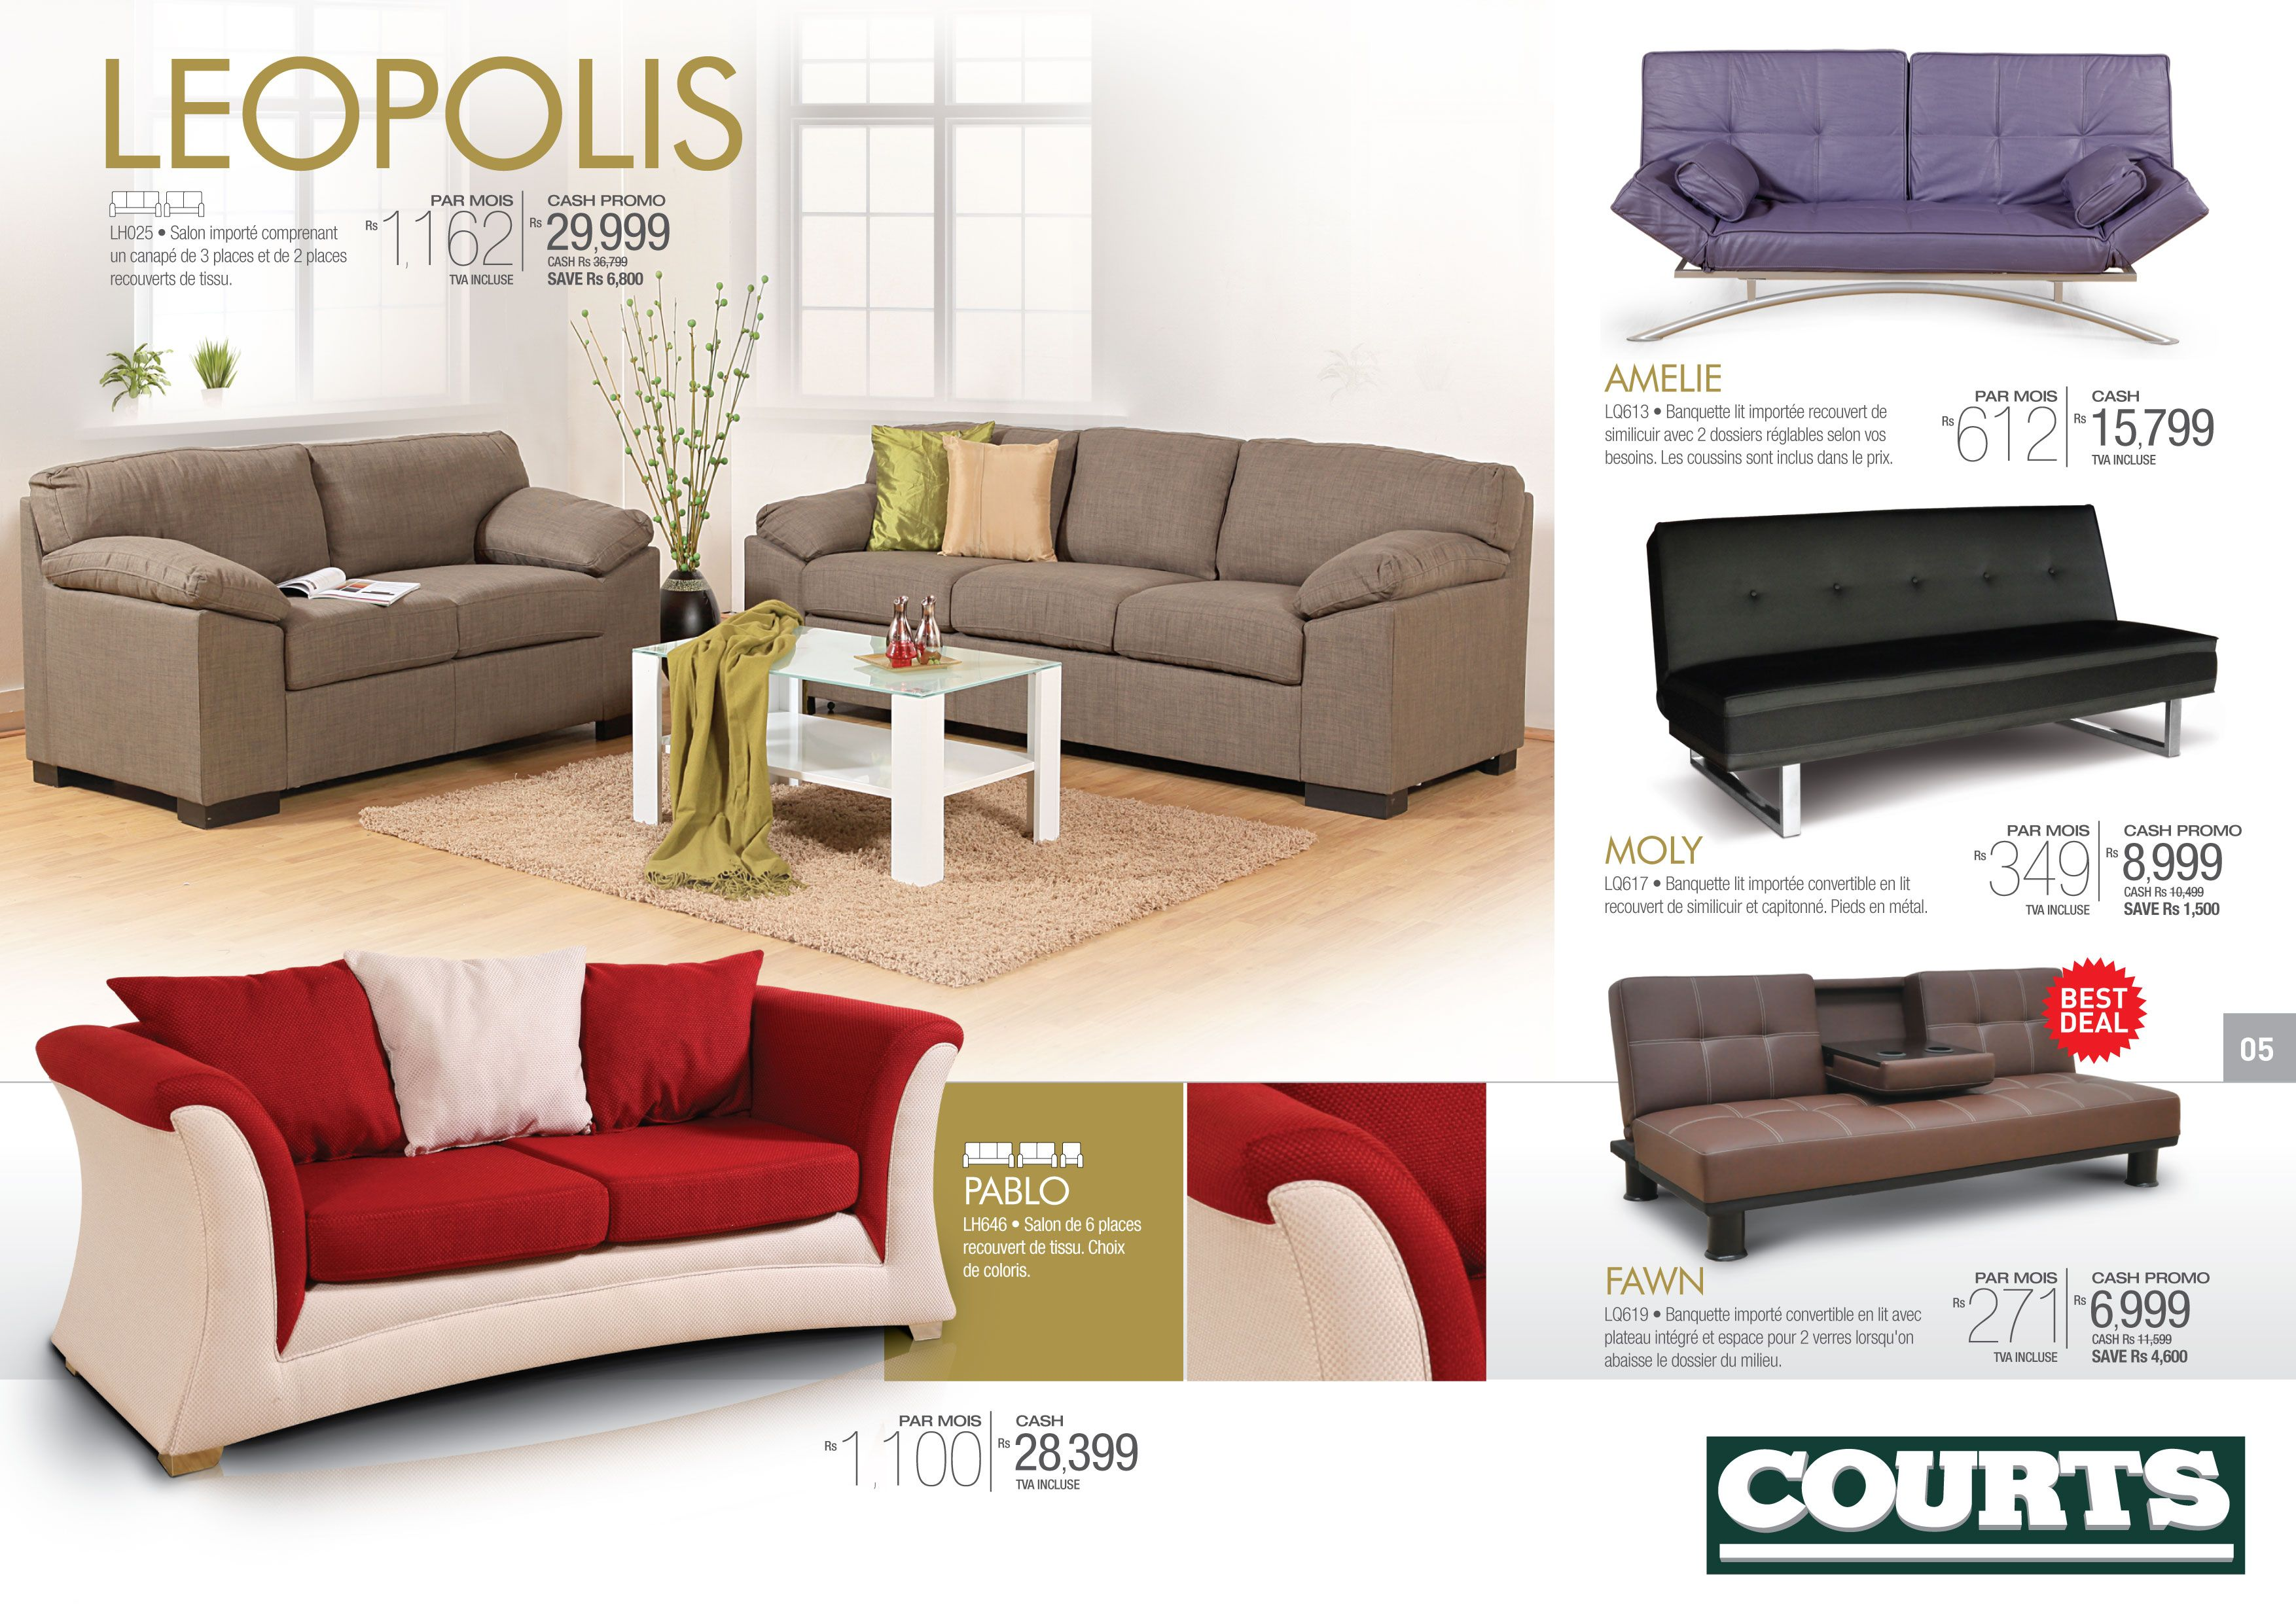 Astounding Ecksofa Angebot Beste Wahl Play With #colours :) On Model